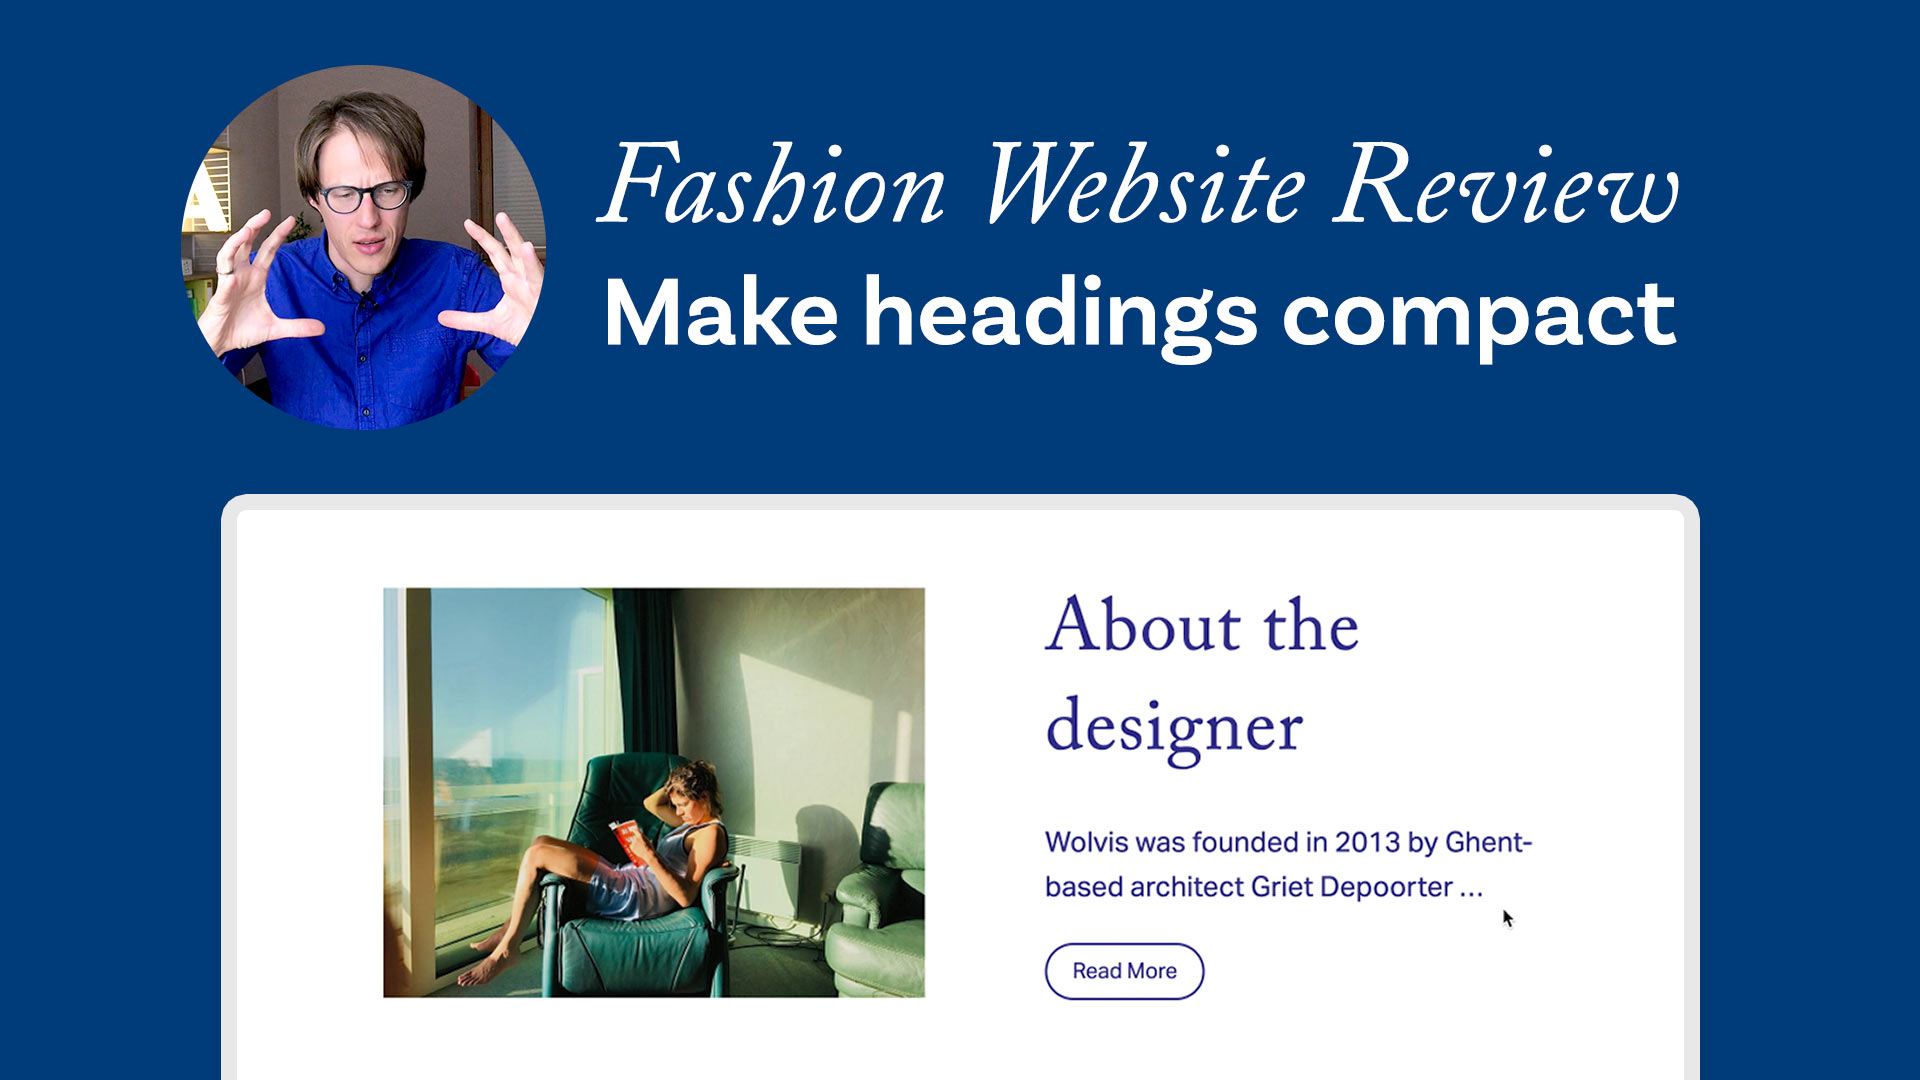 Fashion Website Review Make Headings compact